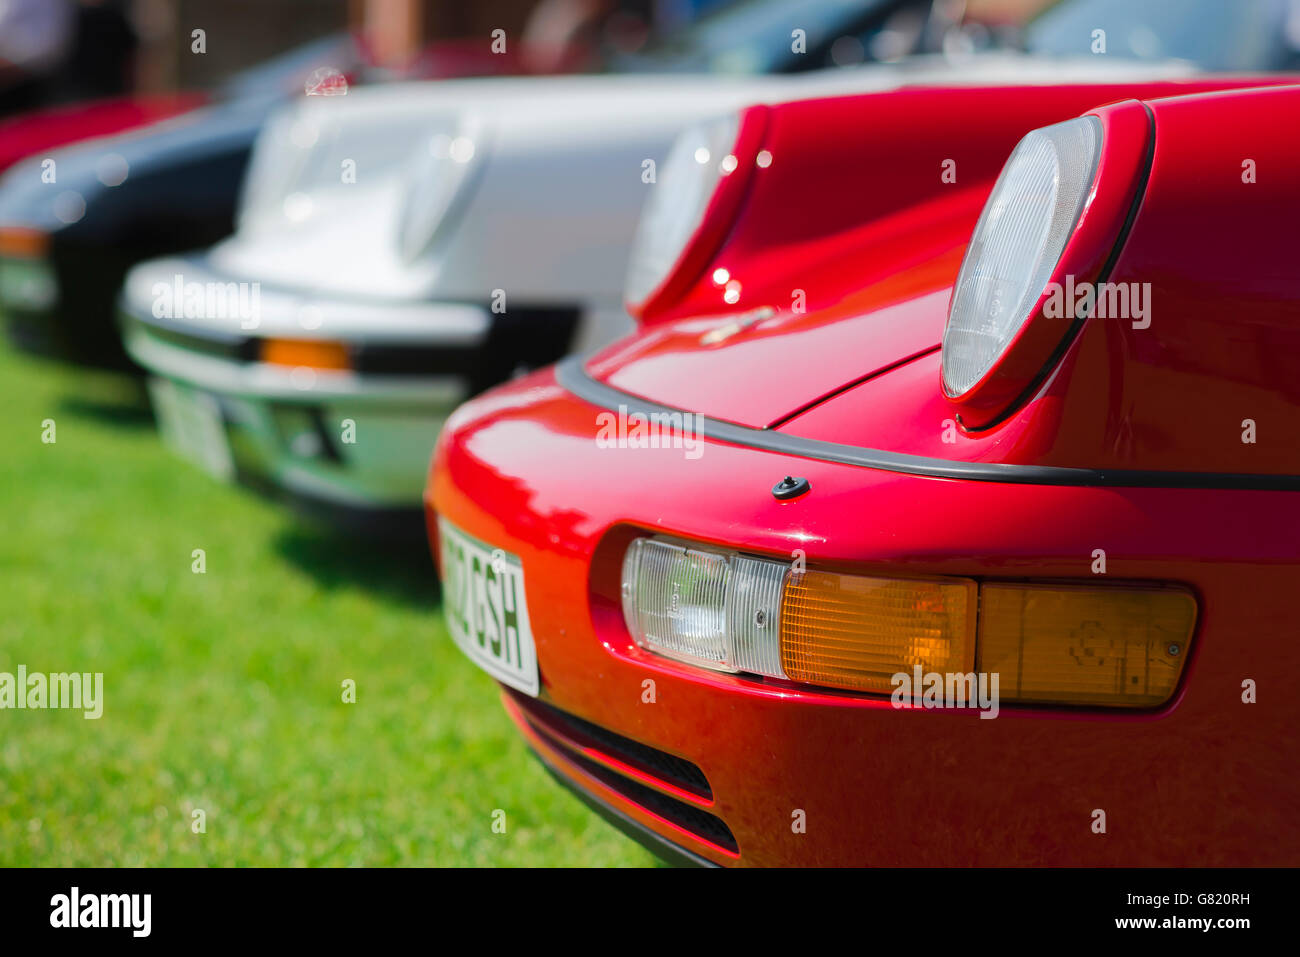 Porsche 911 front , detail of the noses of a line of classic 1980s Porsche 911s. - Stock Image